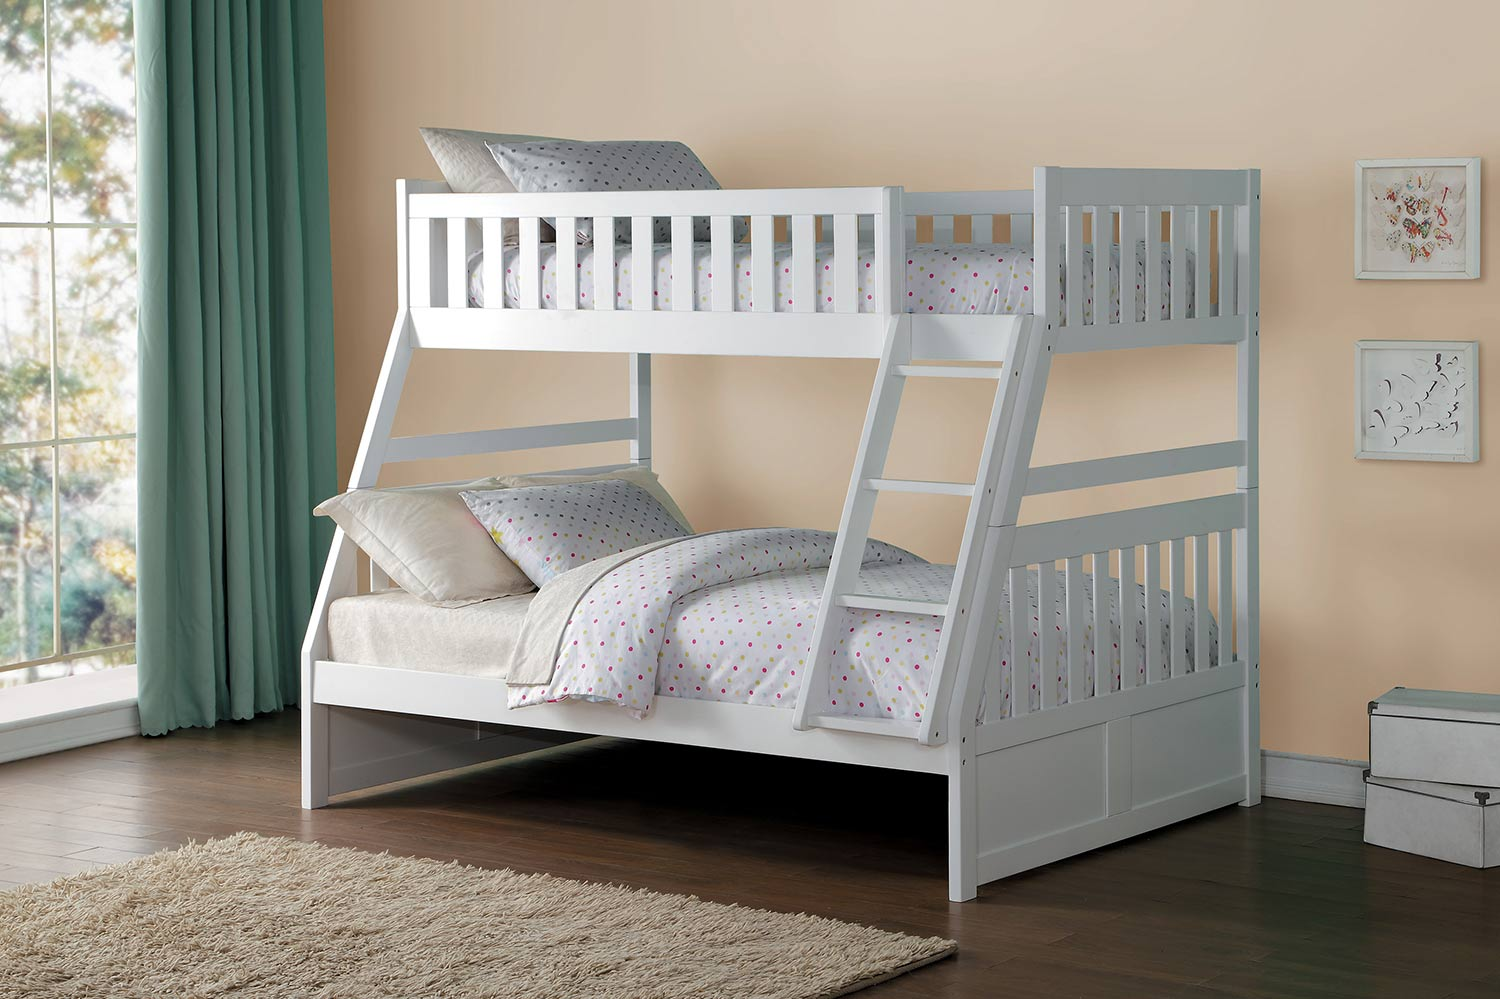 Homelegance Galen Twin over Full Bunk Bed - White